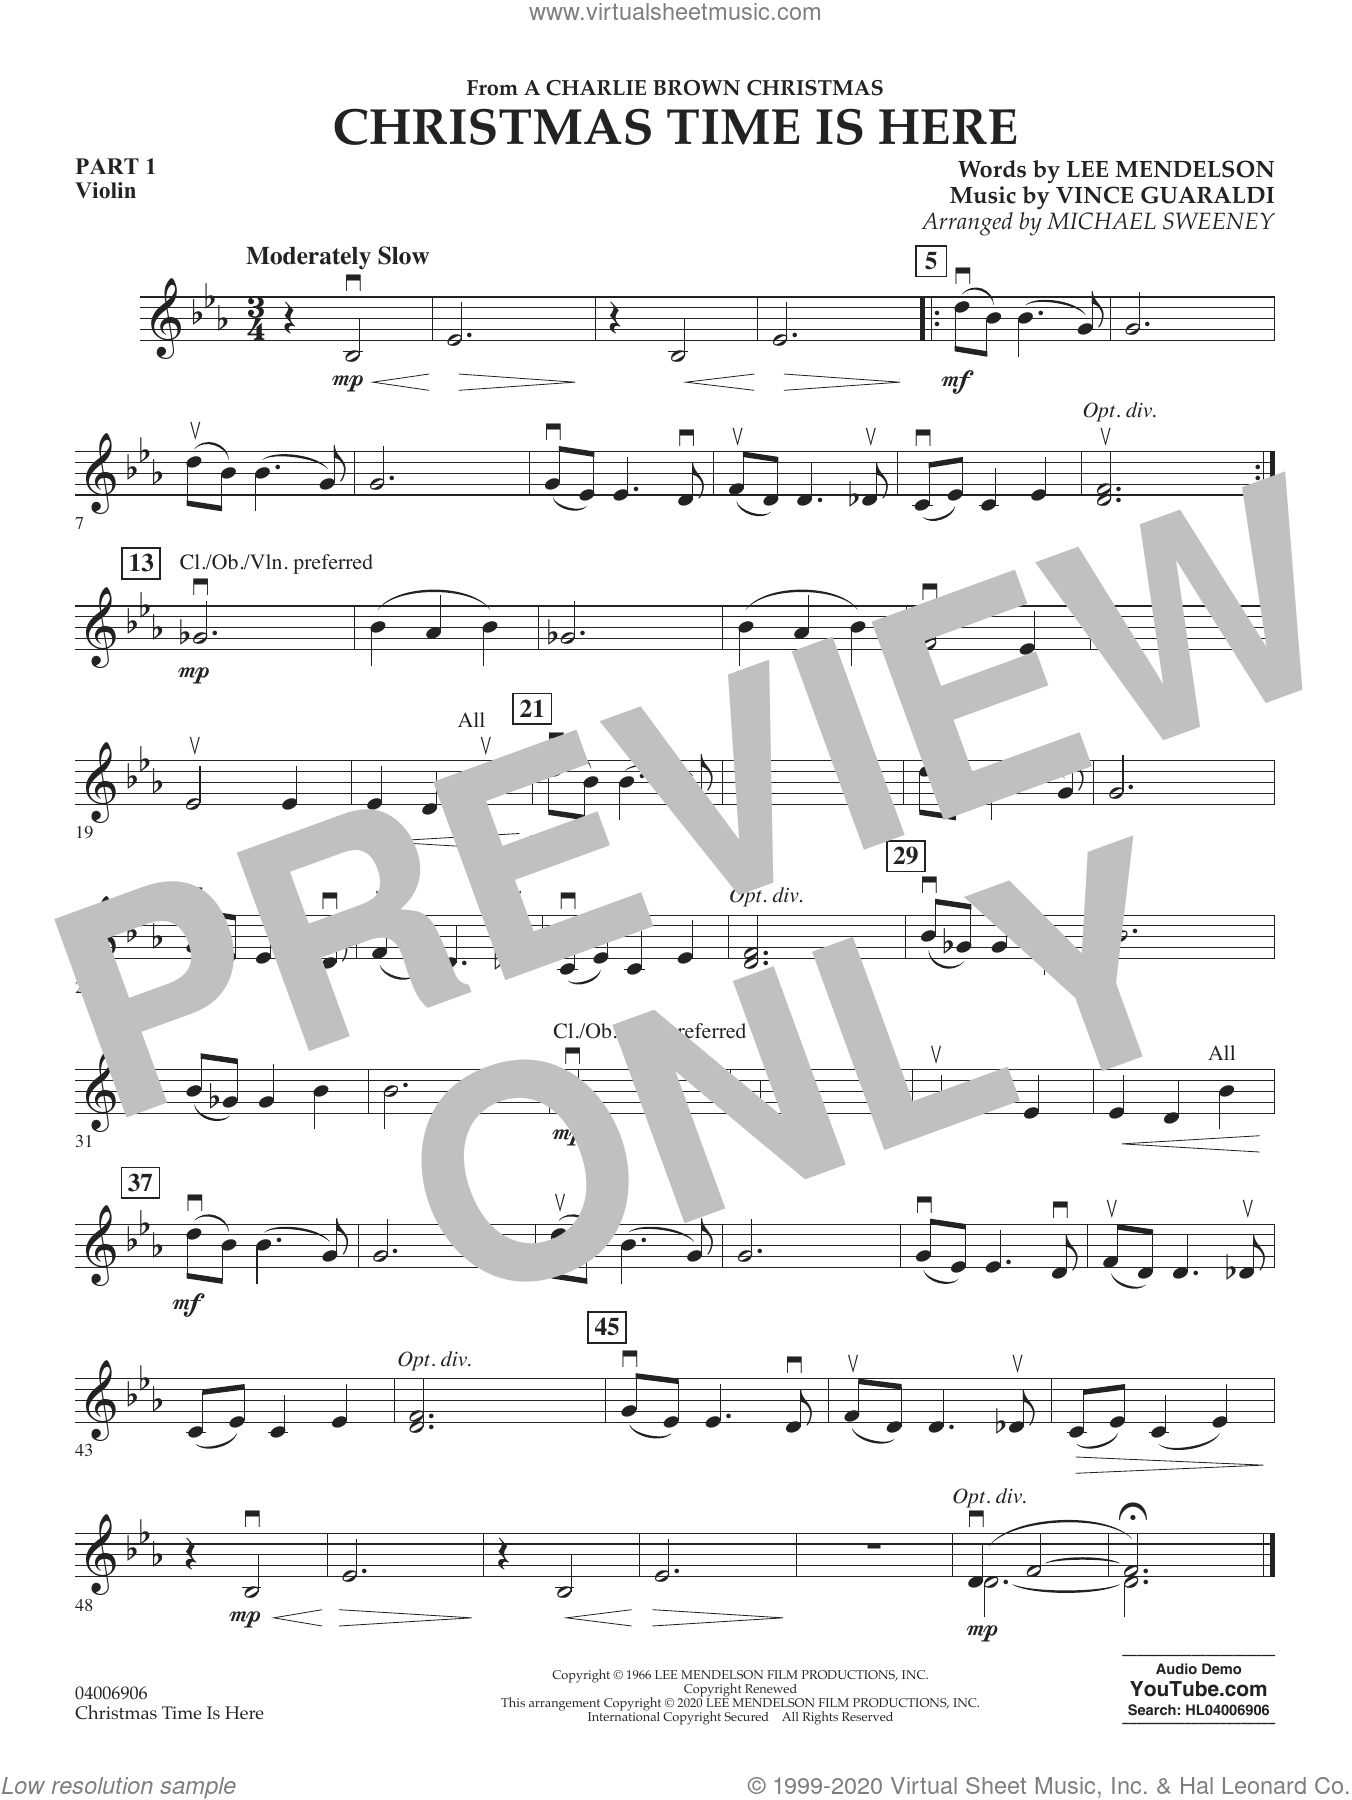 Christmas Time Is Here (arr. Michael Sweeney) sheet music for concert band (pt.1 - violin) by Vince Guaraldi, Michael Sweeney and Lee Mendelson, intermediate skill level